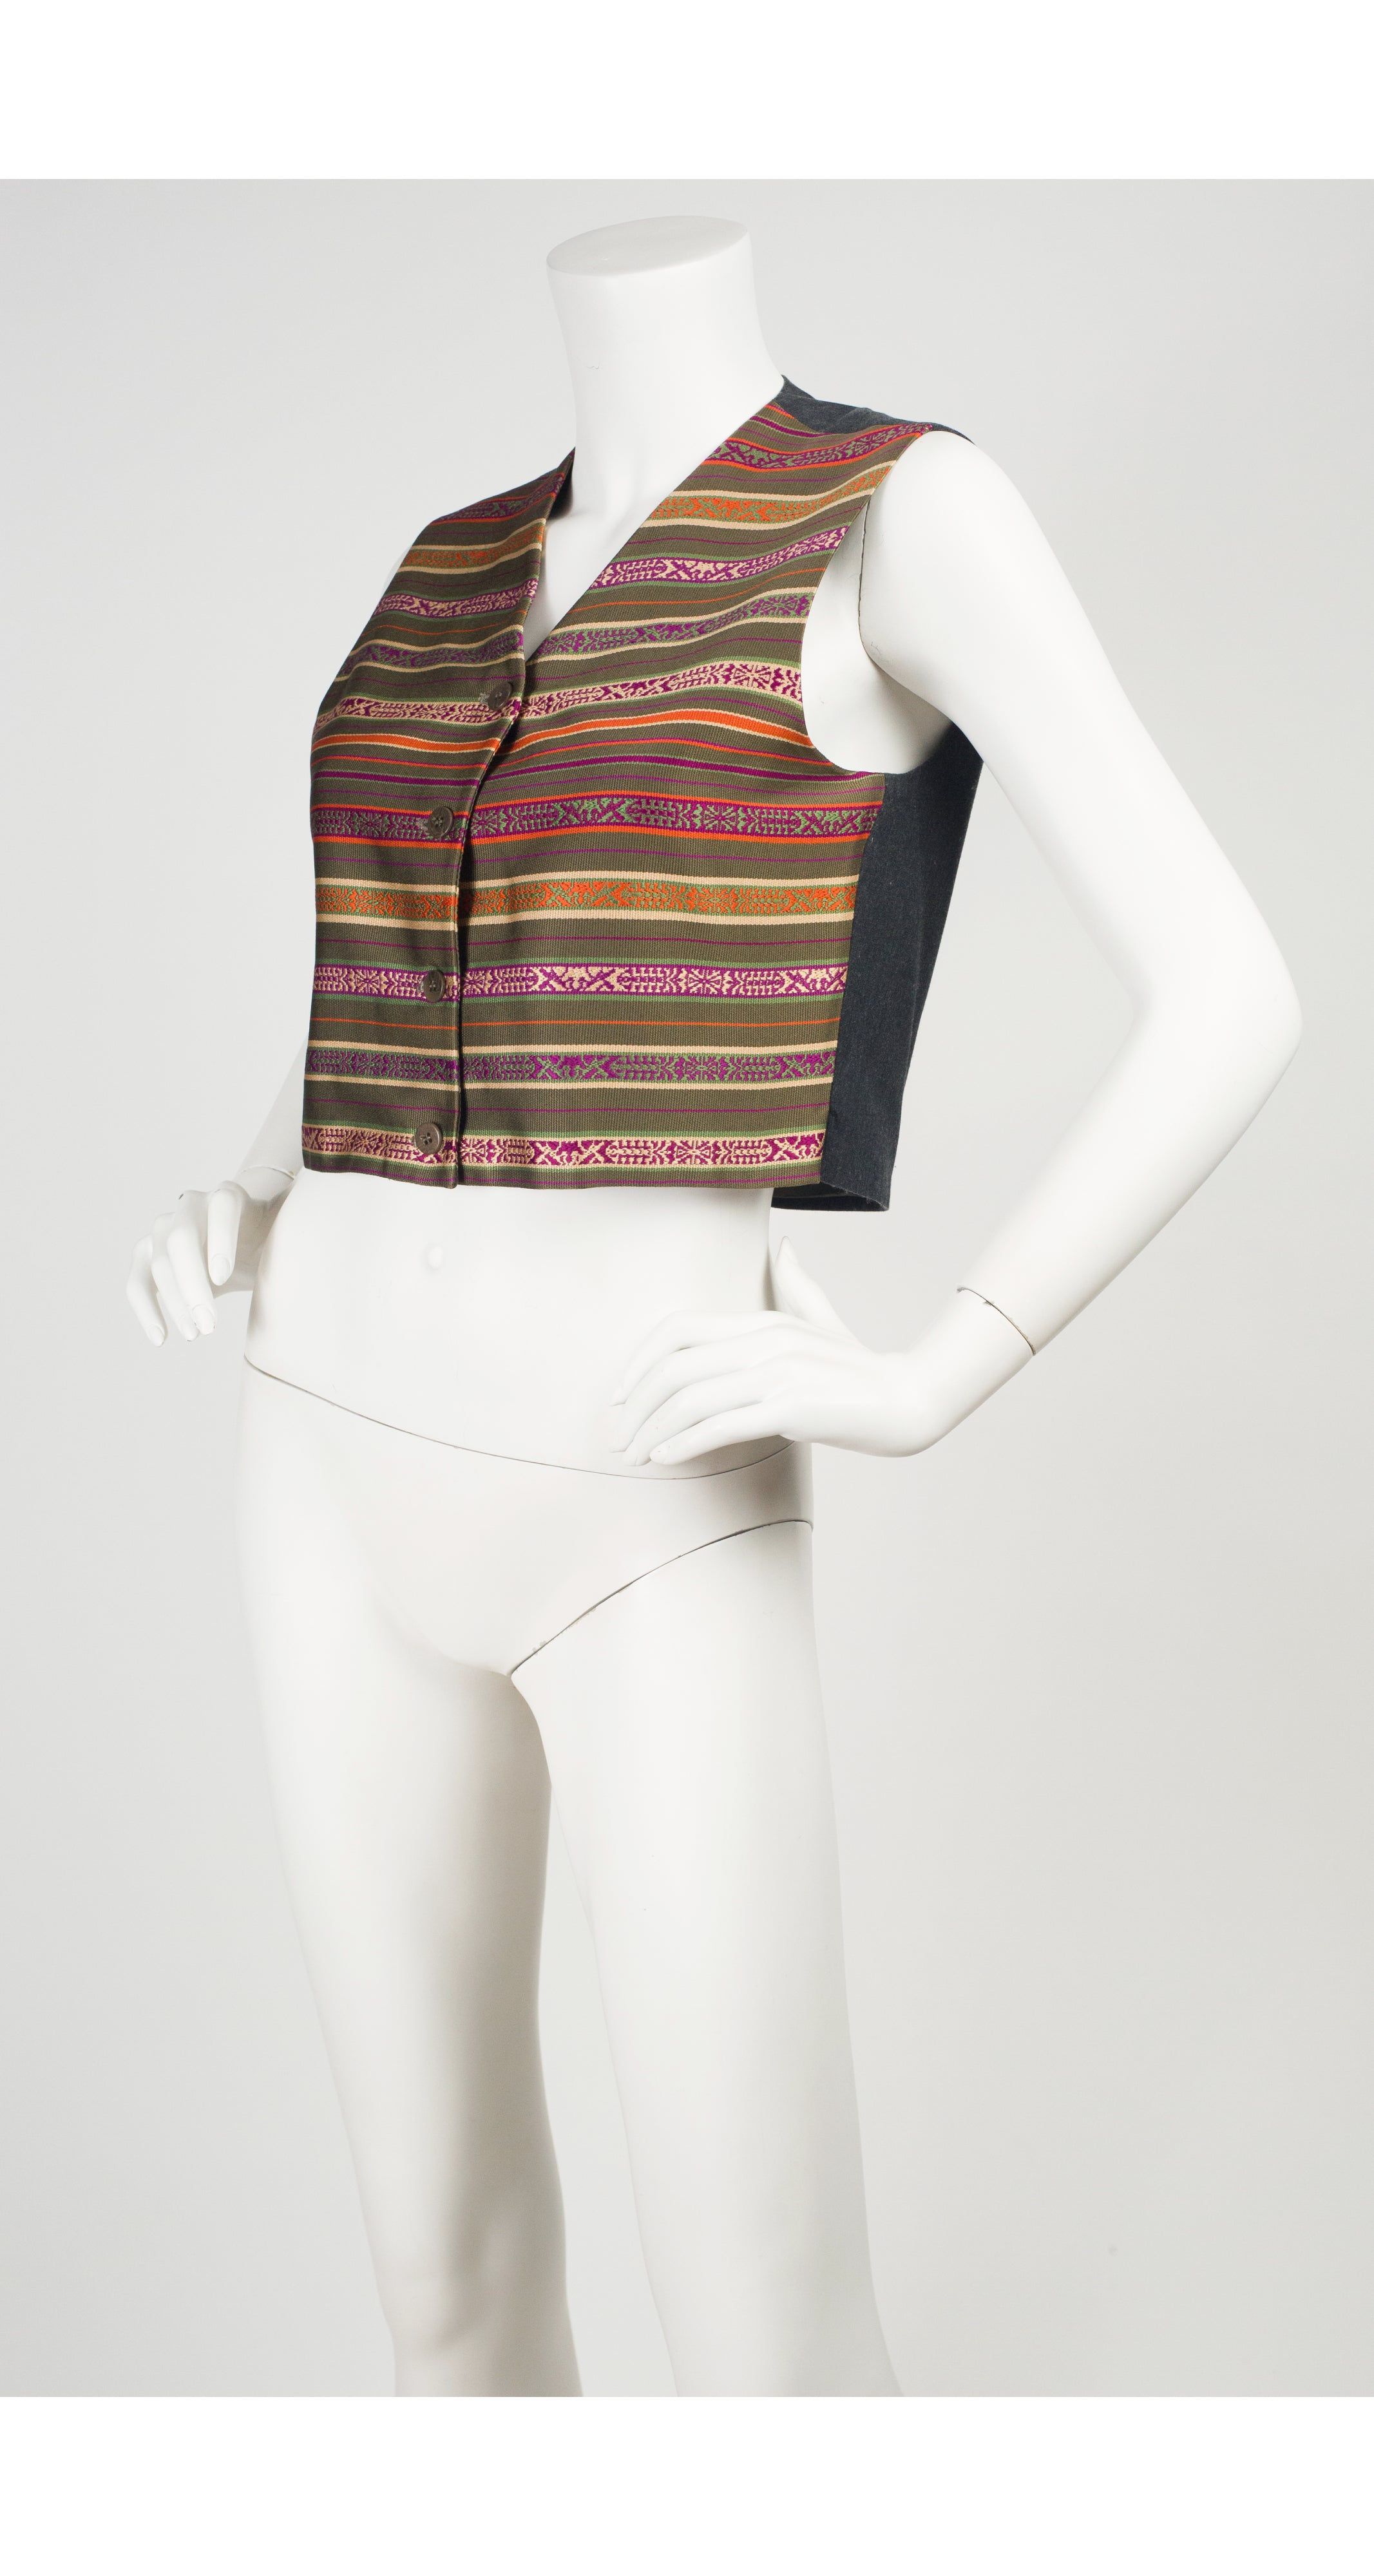 c. 1990 Striped Silk Jacquard Cropped Vest